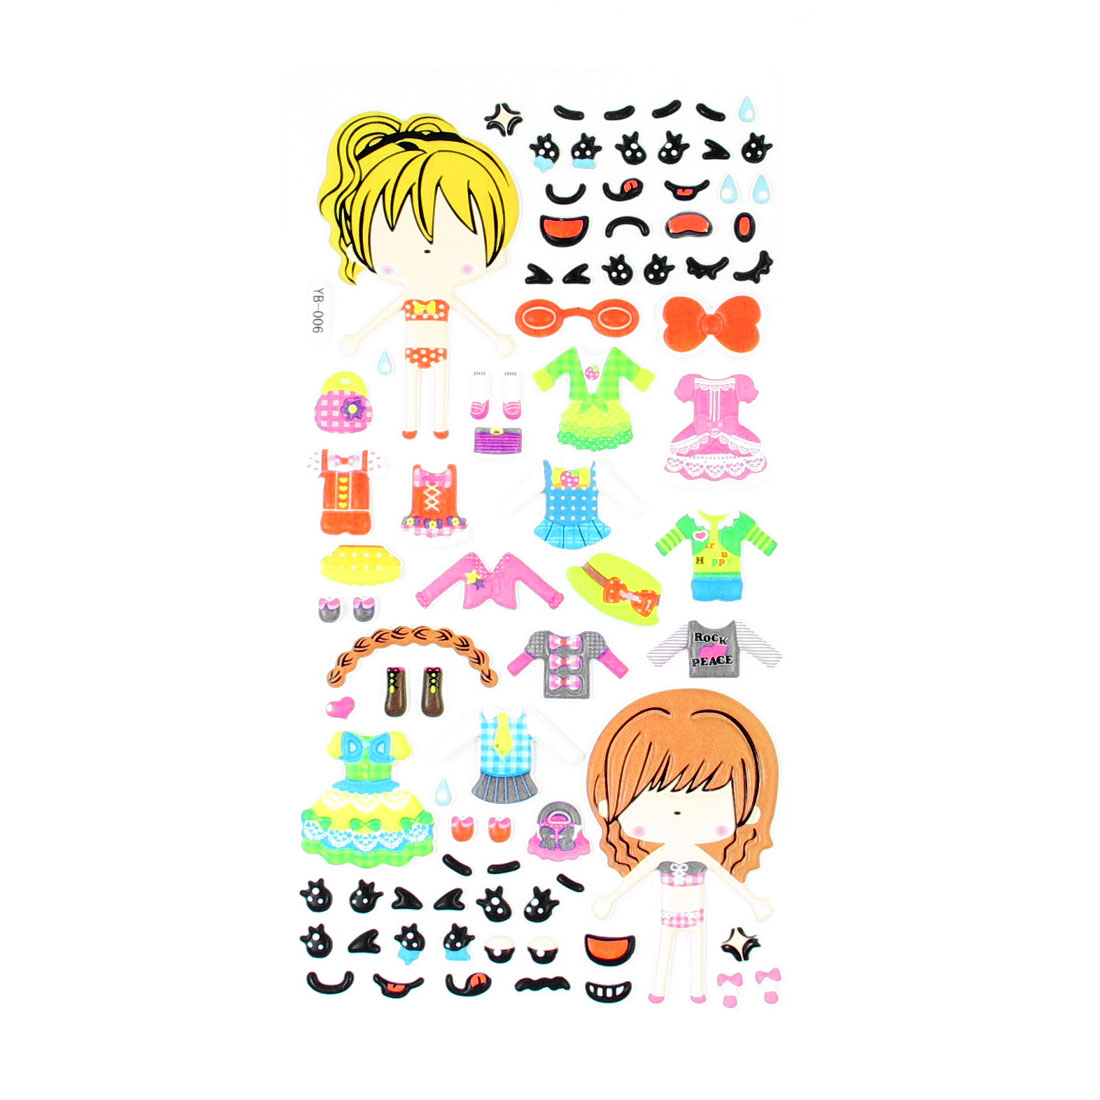 Girls Eyes Nose Mouth Pattern Dress Up 3D Puffy Sticker Decal